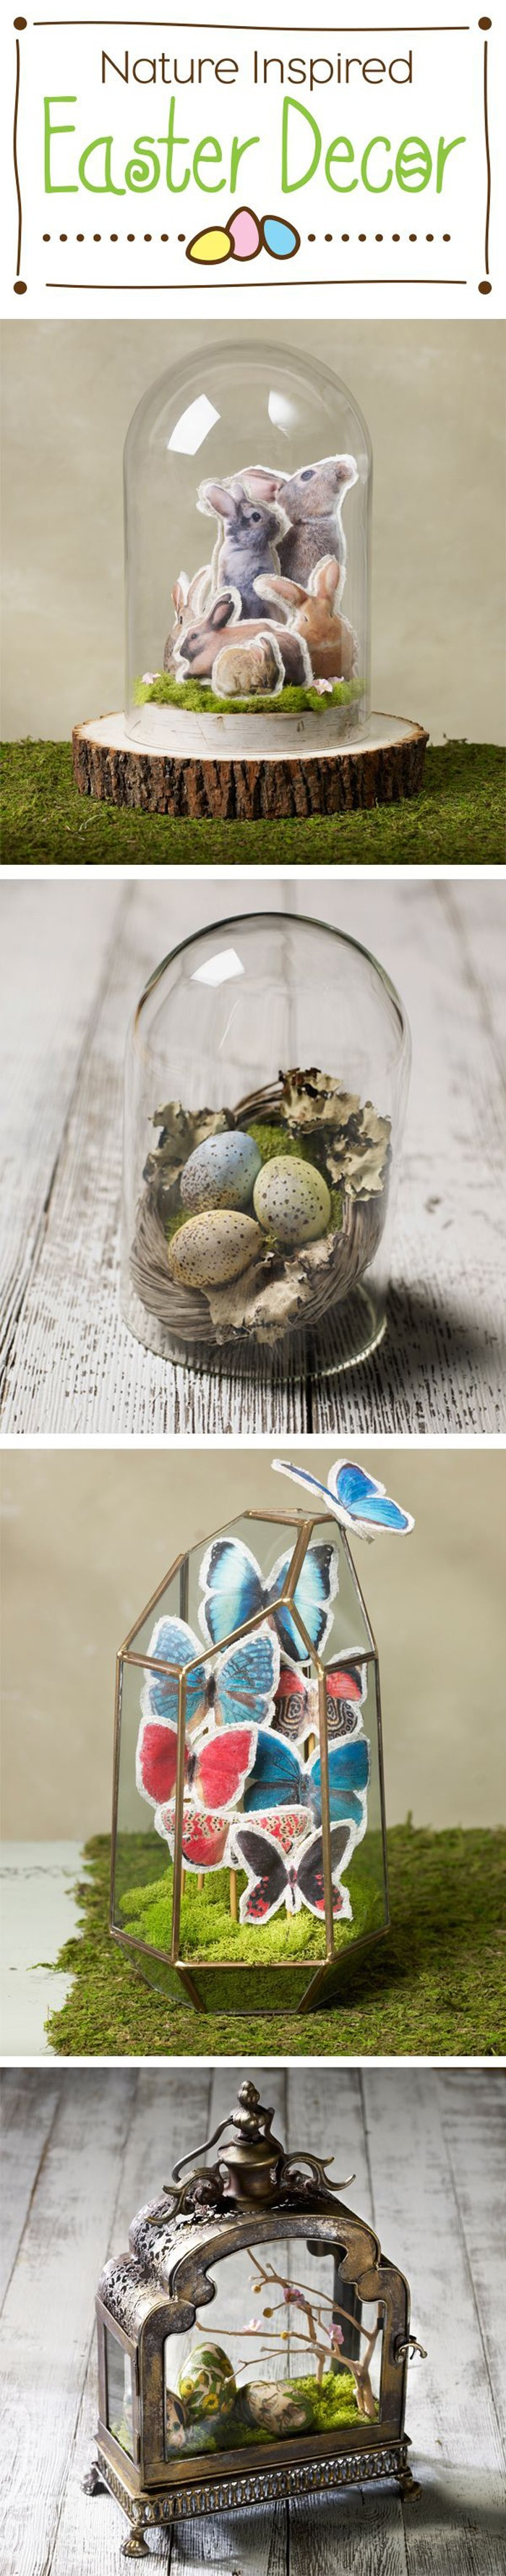 Sophisticated crafts for Easter and cool Easter decorations 2017